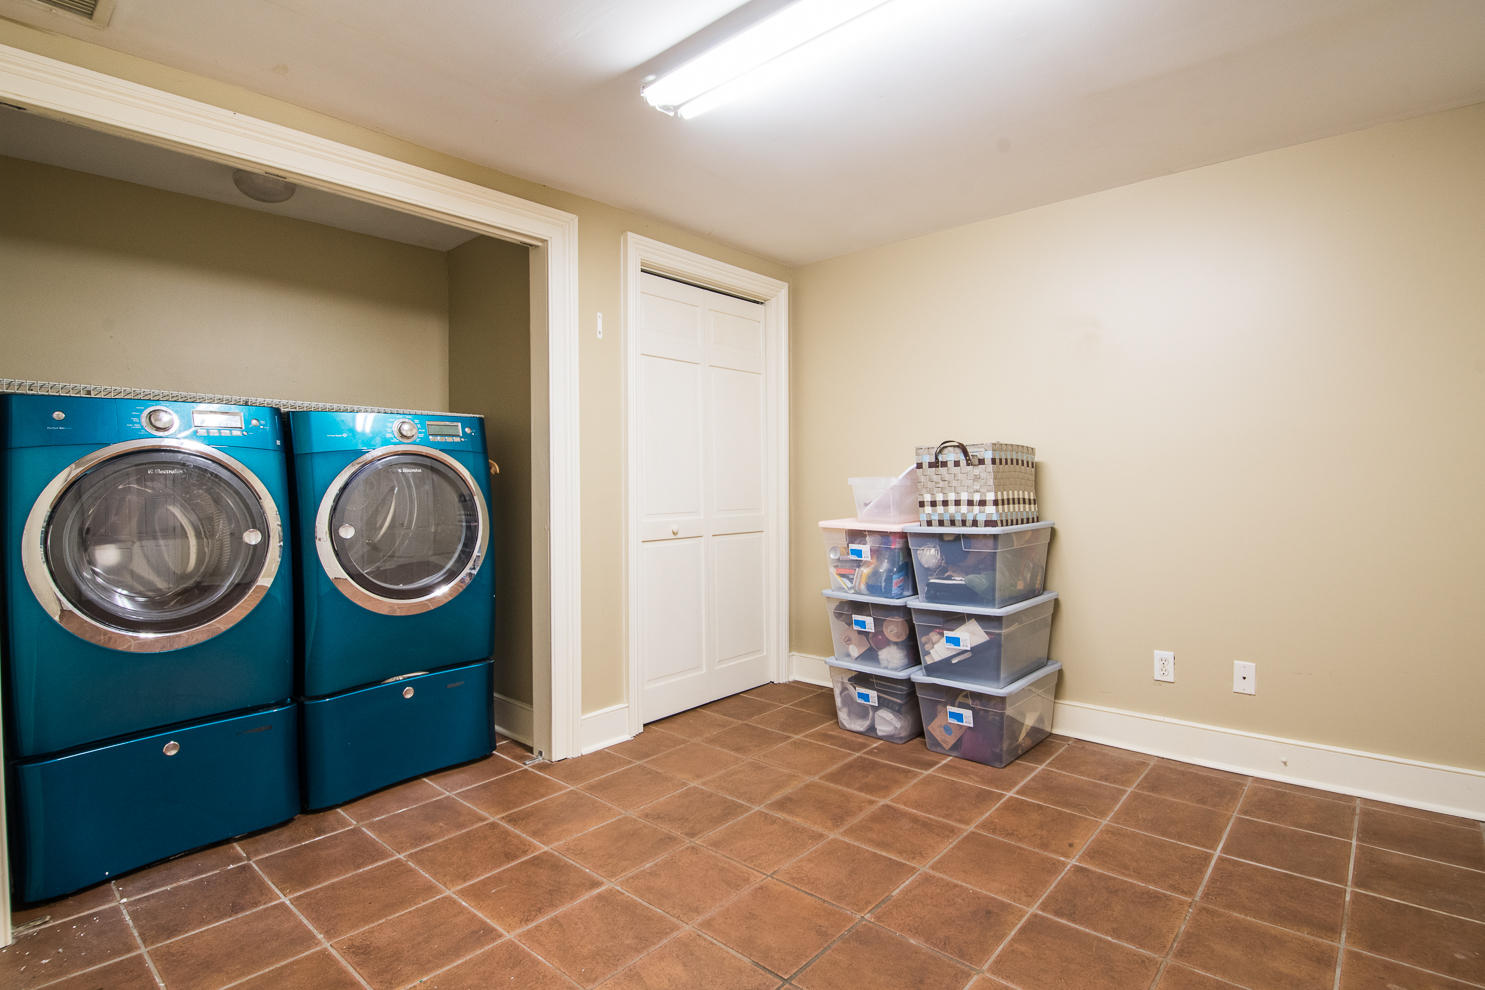 South of Broad Homes For Sale - 1 Prices, Charleston, SC - 64